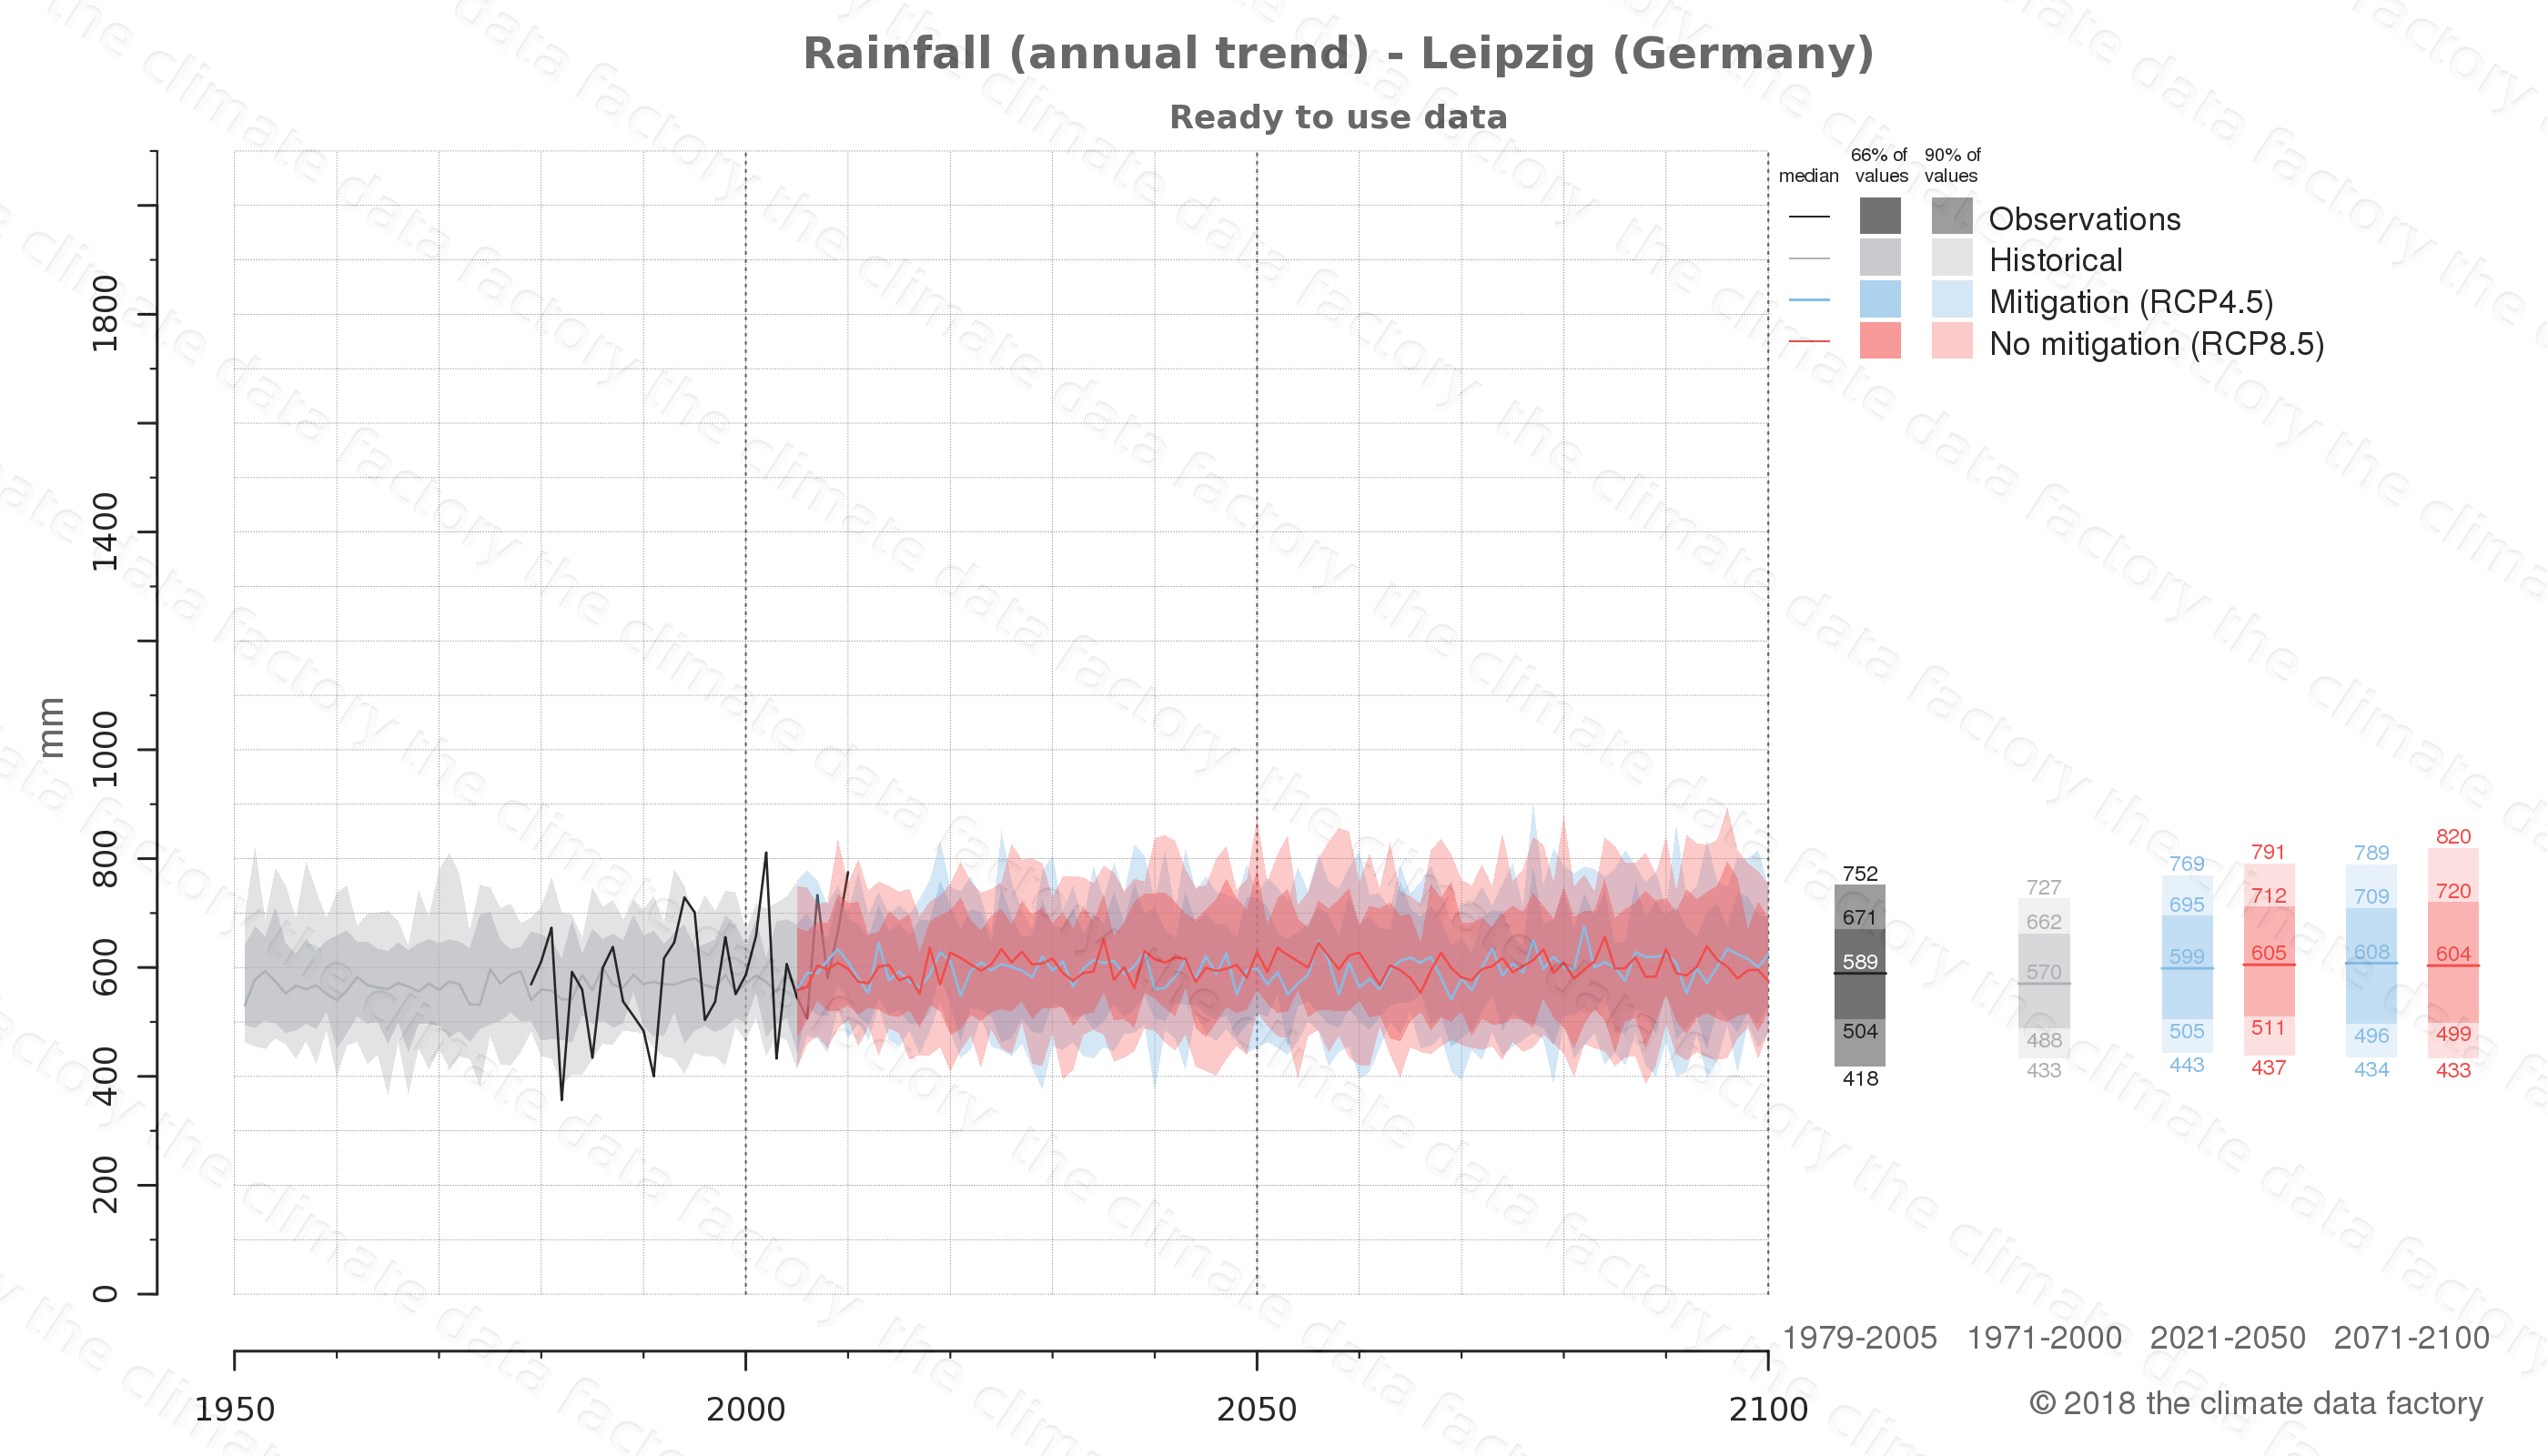 climate change data policy adaptation climate graph city data rainfall leipzig germany